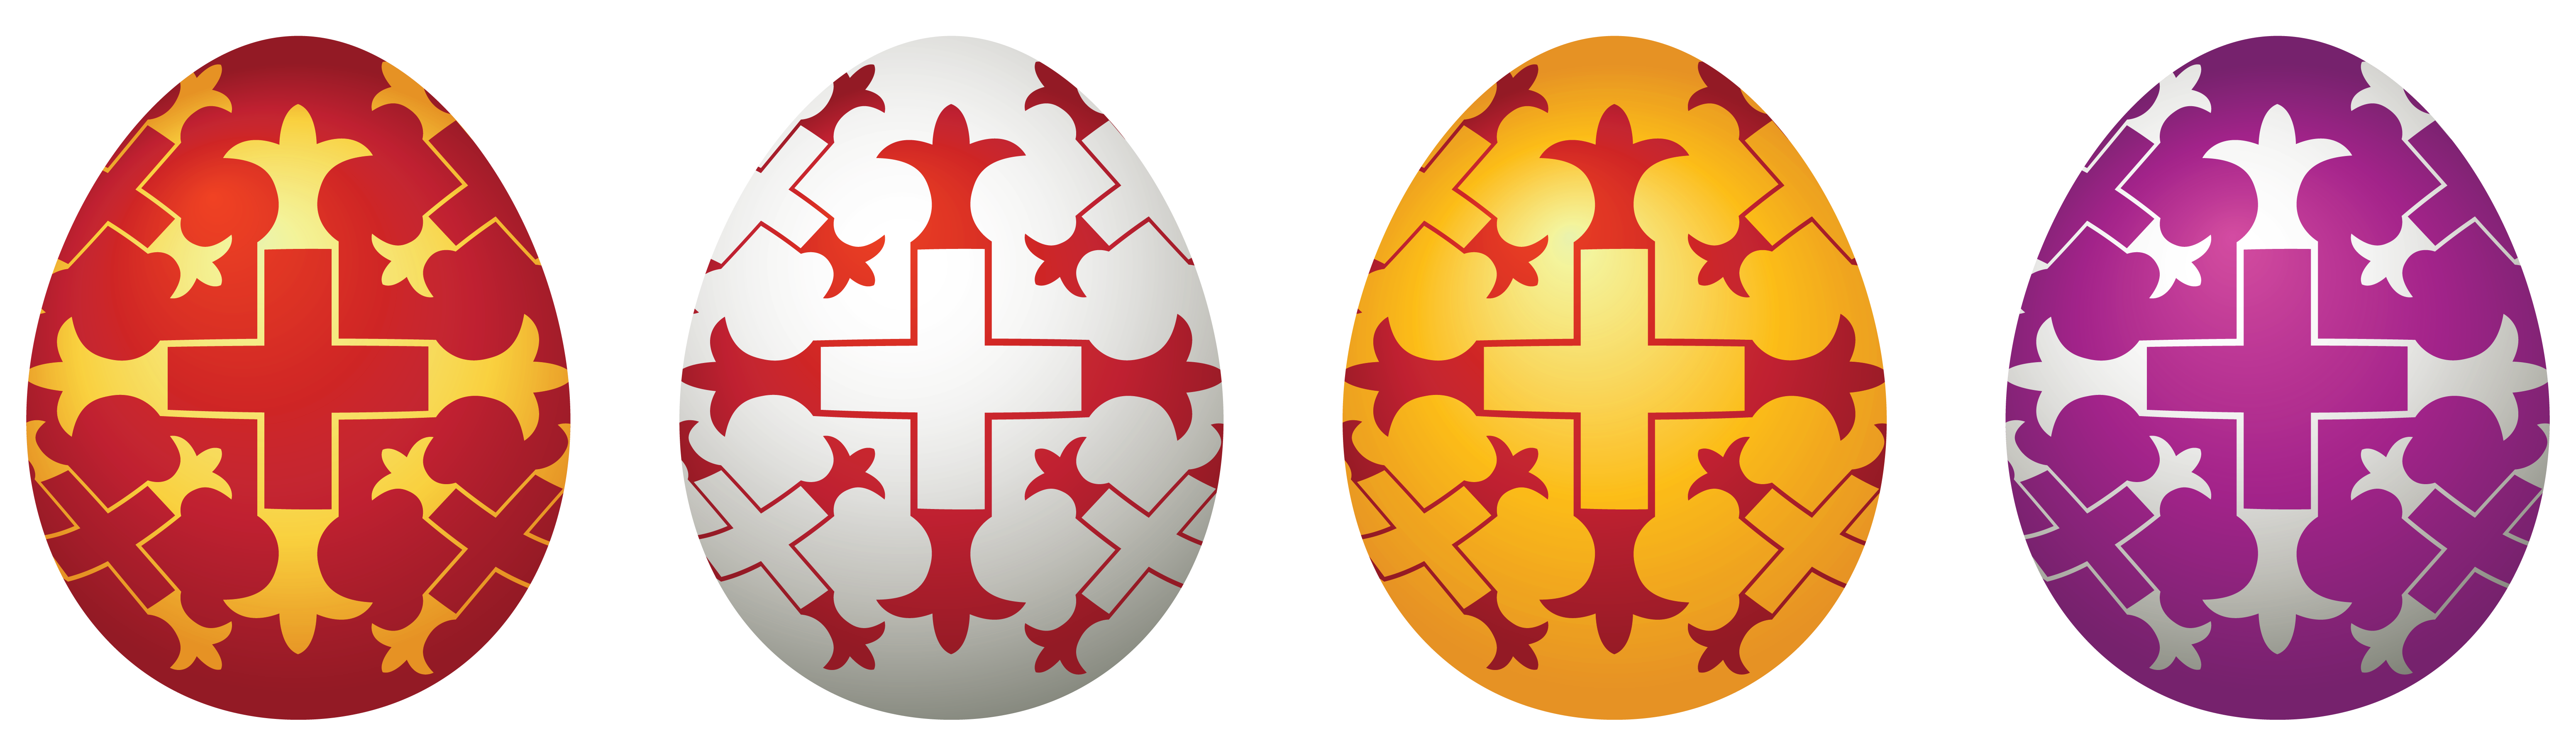 Clipart easter symbol. Eggs set png picture